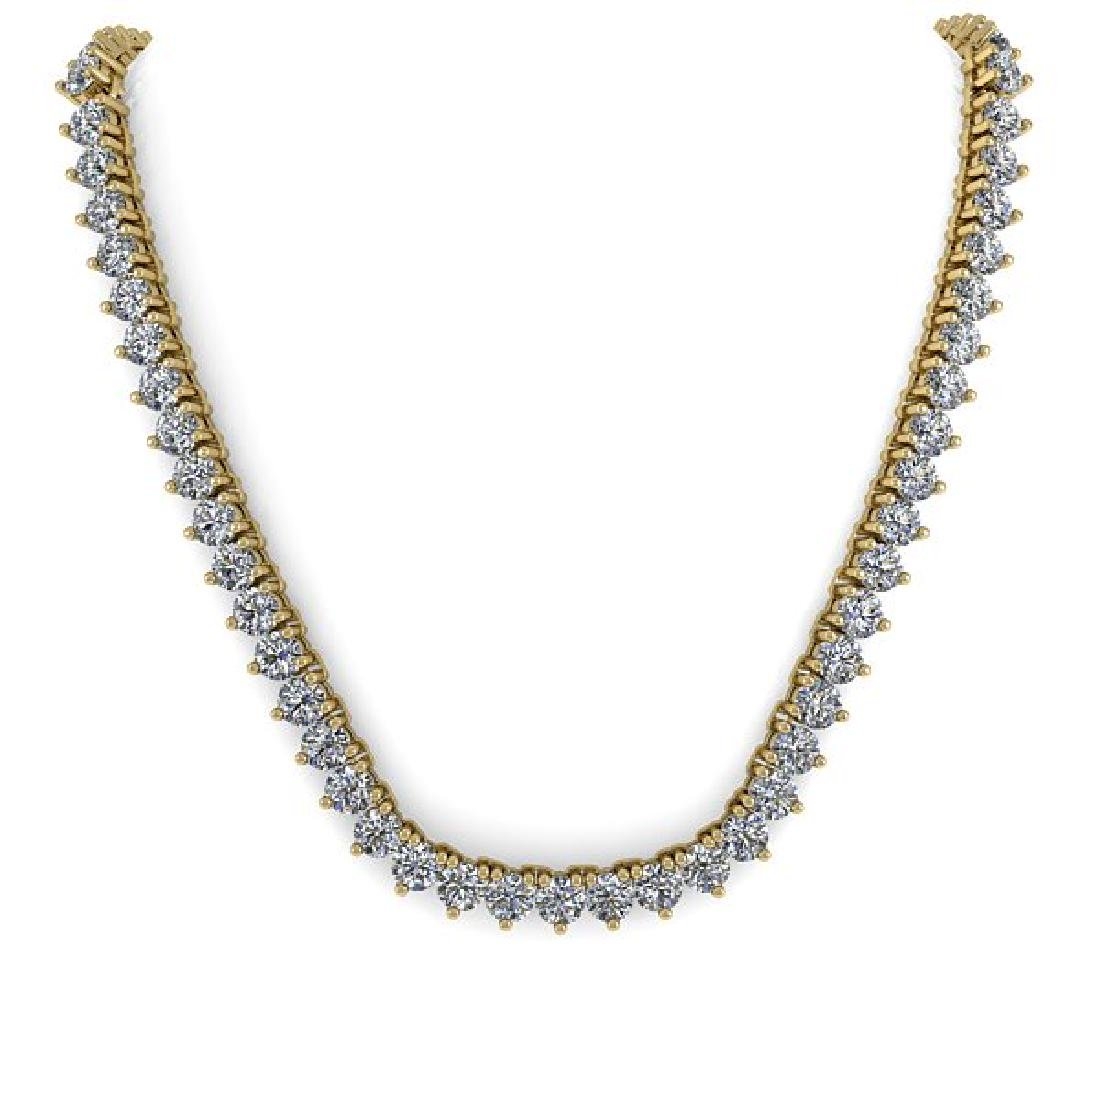 53 CTW Solitaire SI Diamond Necklace 18K Yellow Gold - 3